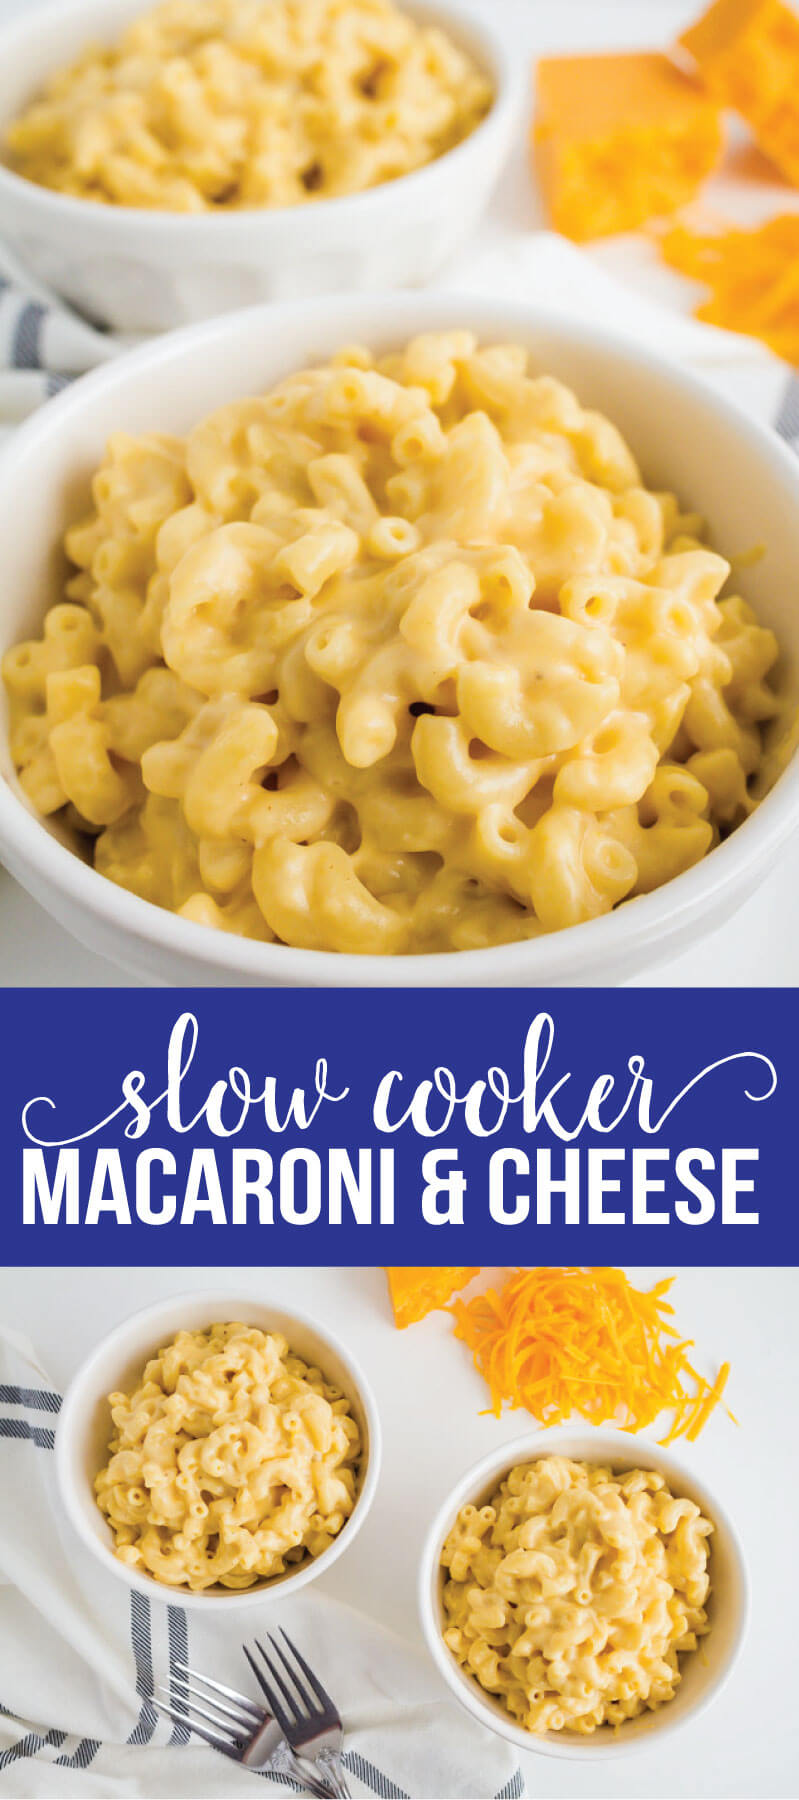 Slow Cooker Macaroni and Cheese Recipe - make this amazing mac and cheese recipe in the crockpot! via www.thirtyhandmadedays.com